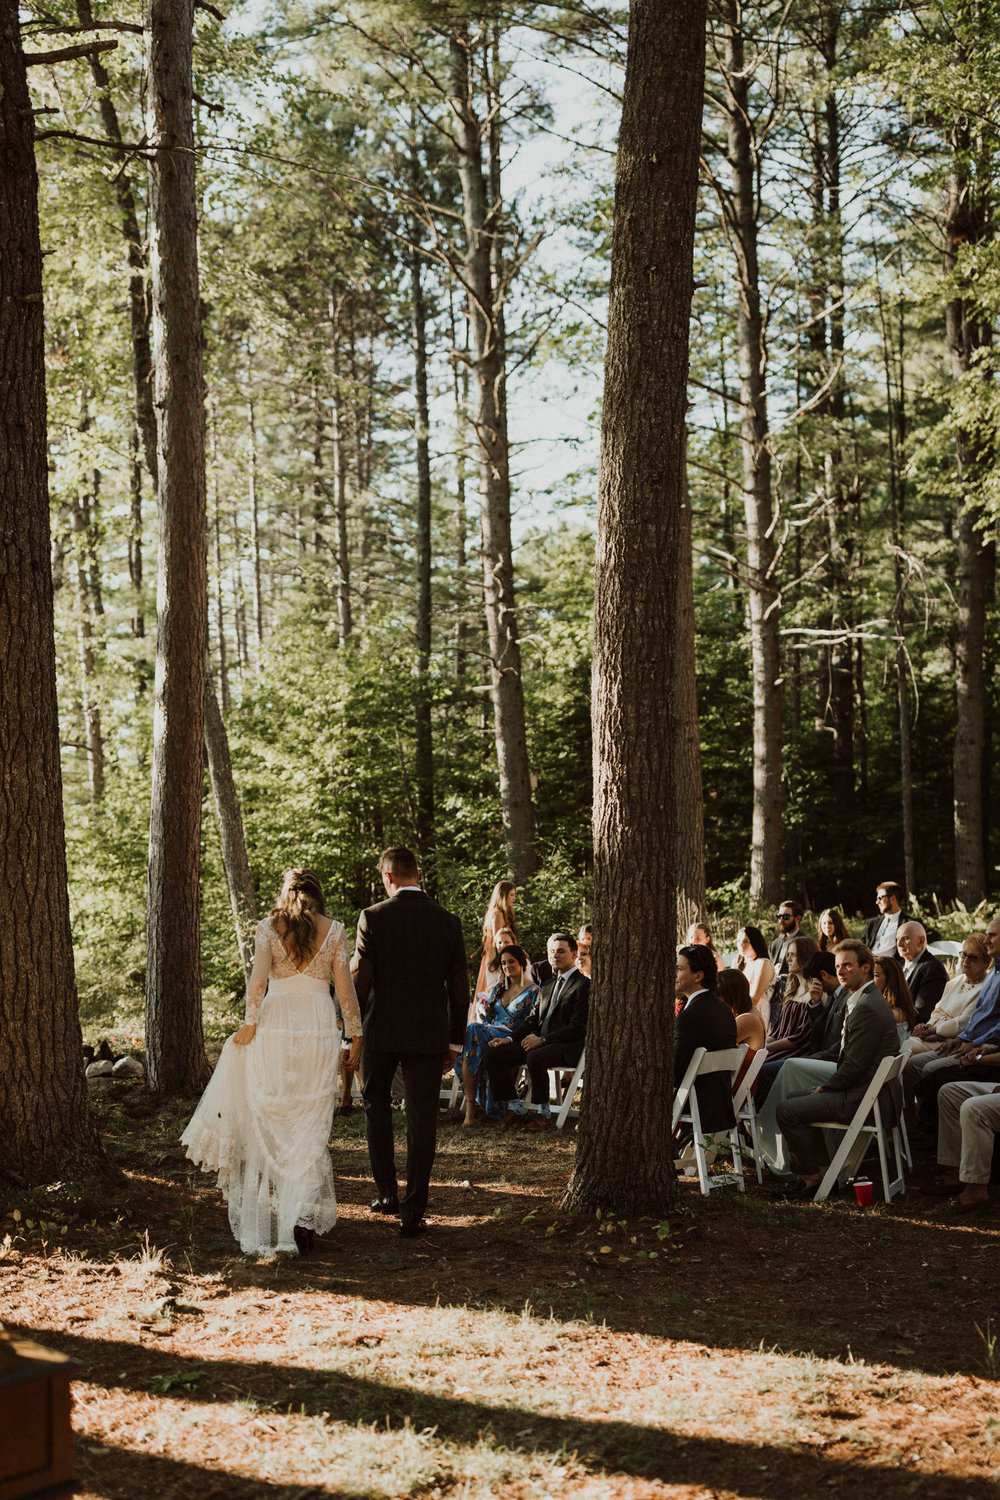 backyard-wedding-maine-wedding-photographer-38.jpg